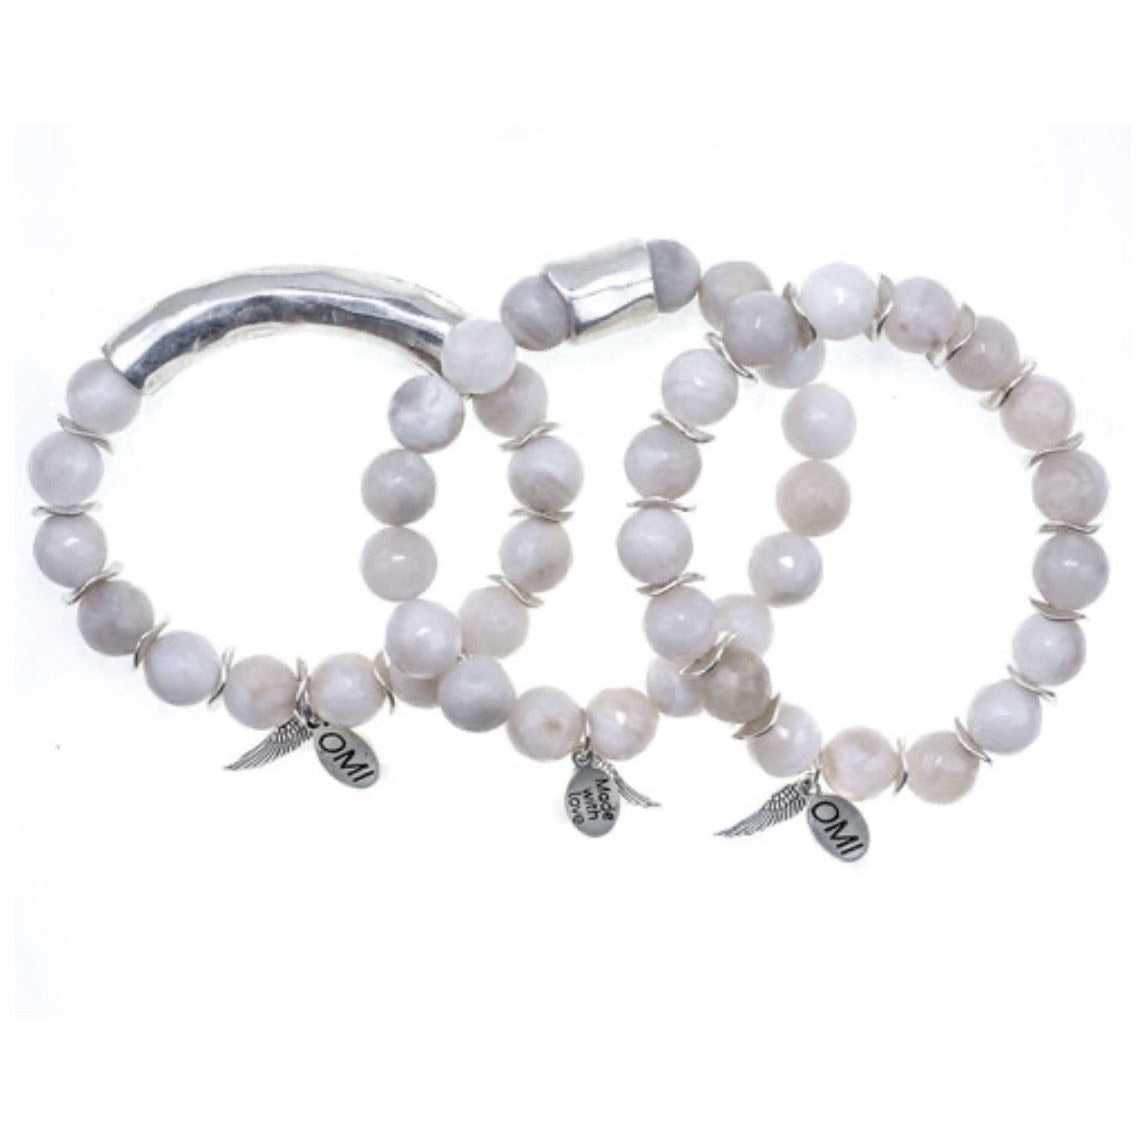 Sold Out ! Blanca Bracelet Trio Set In Silver by Omi Beads - Glamco Boutique